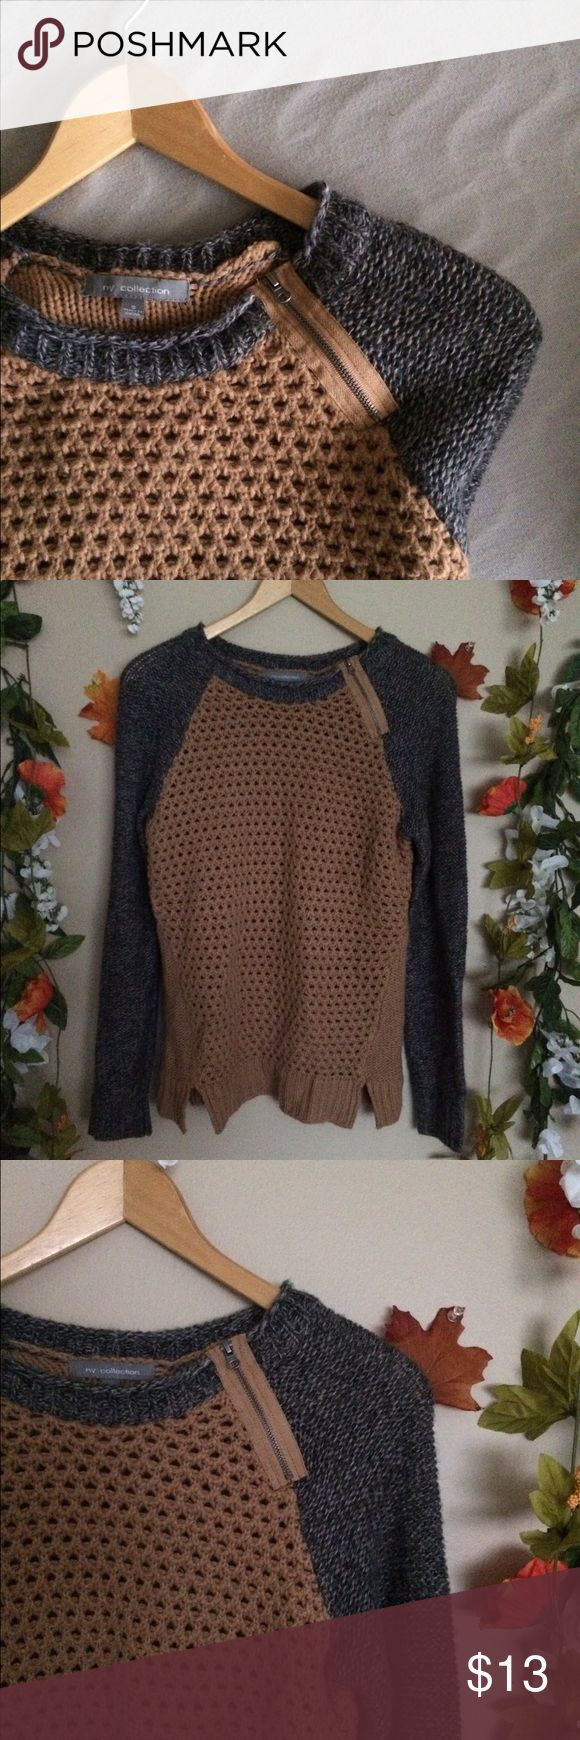 NY collection sweater *ny collection brand *size small *brown and gray with style zipper by shoulder NY Collection Sweaters Crew & Scoop Necks